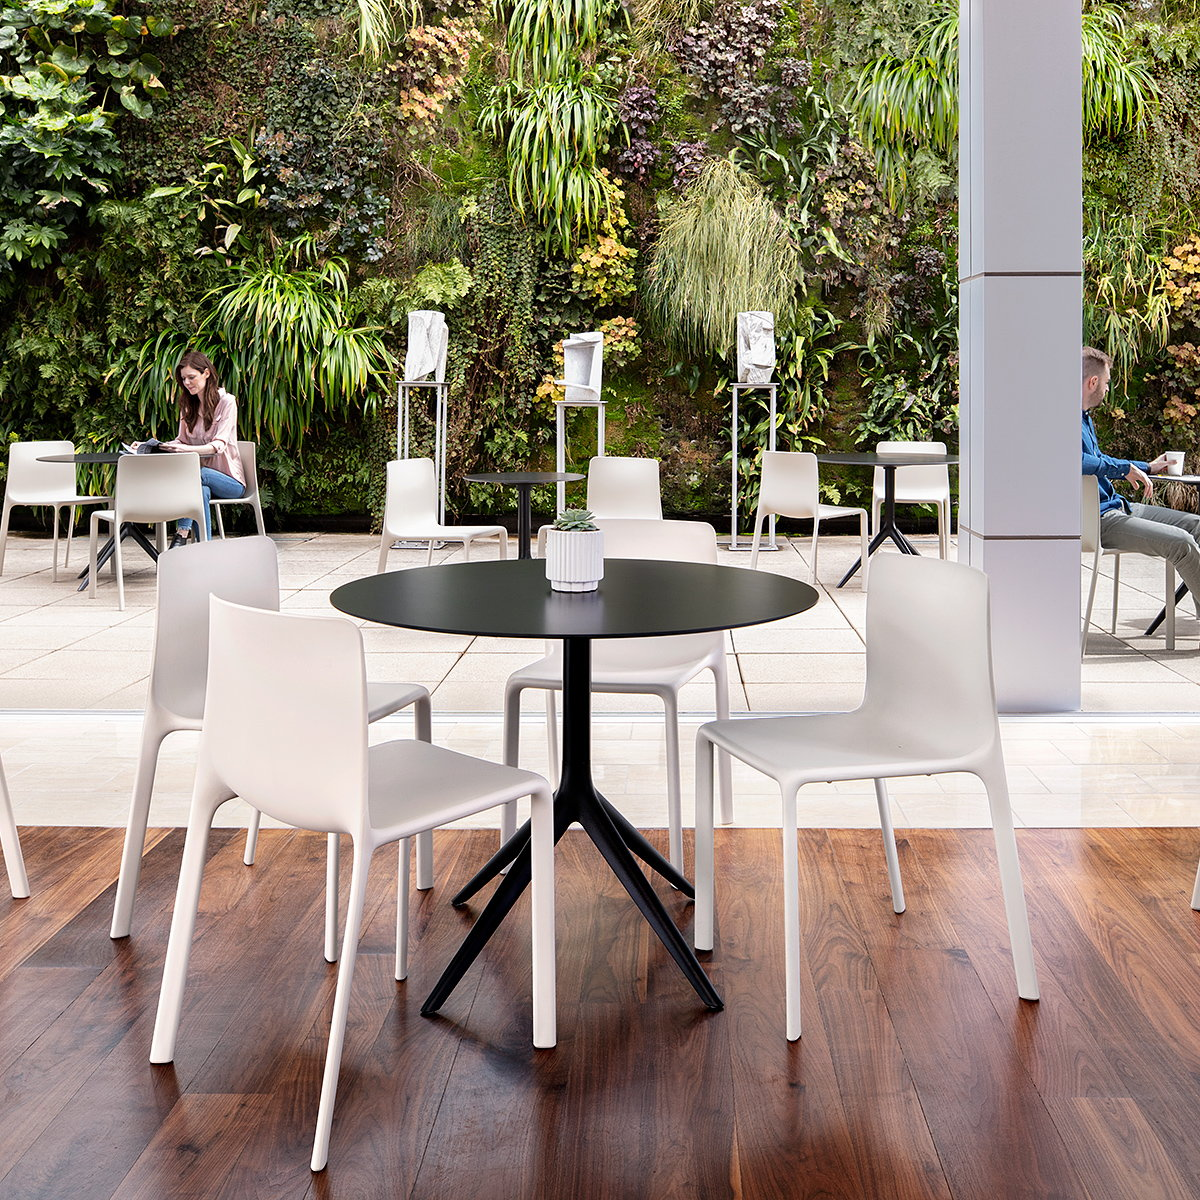 Studio TK Partners with Vondom, Debuts Four Indoor/Outdoor Seating and Table Collections